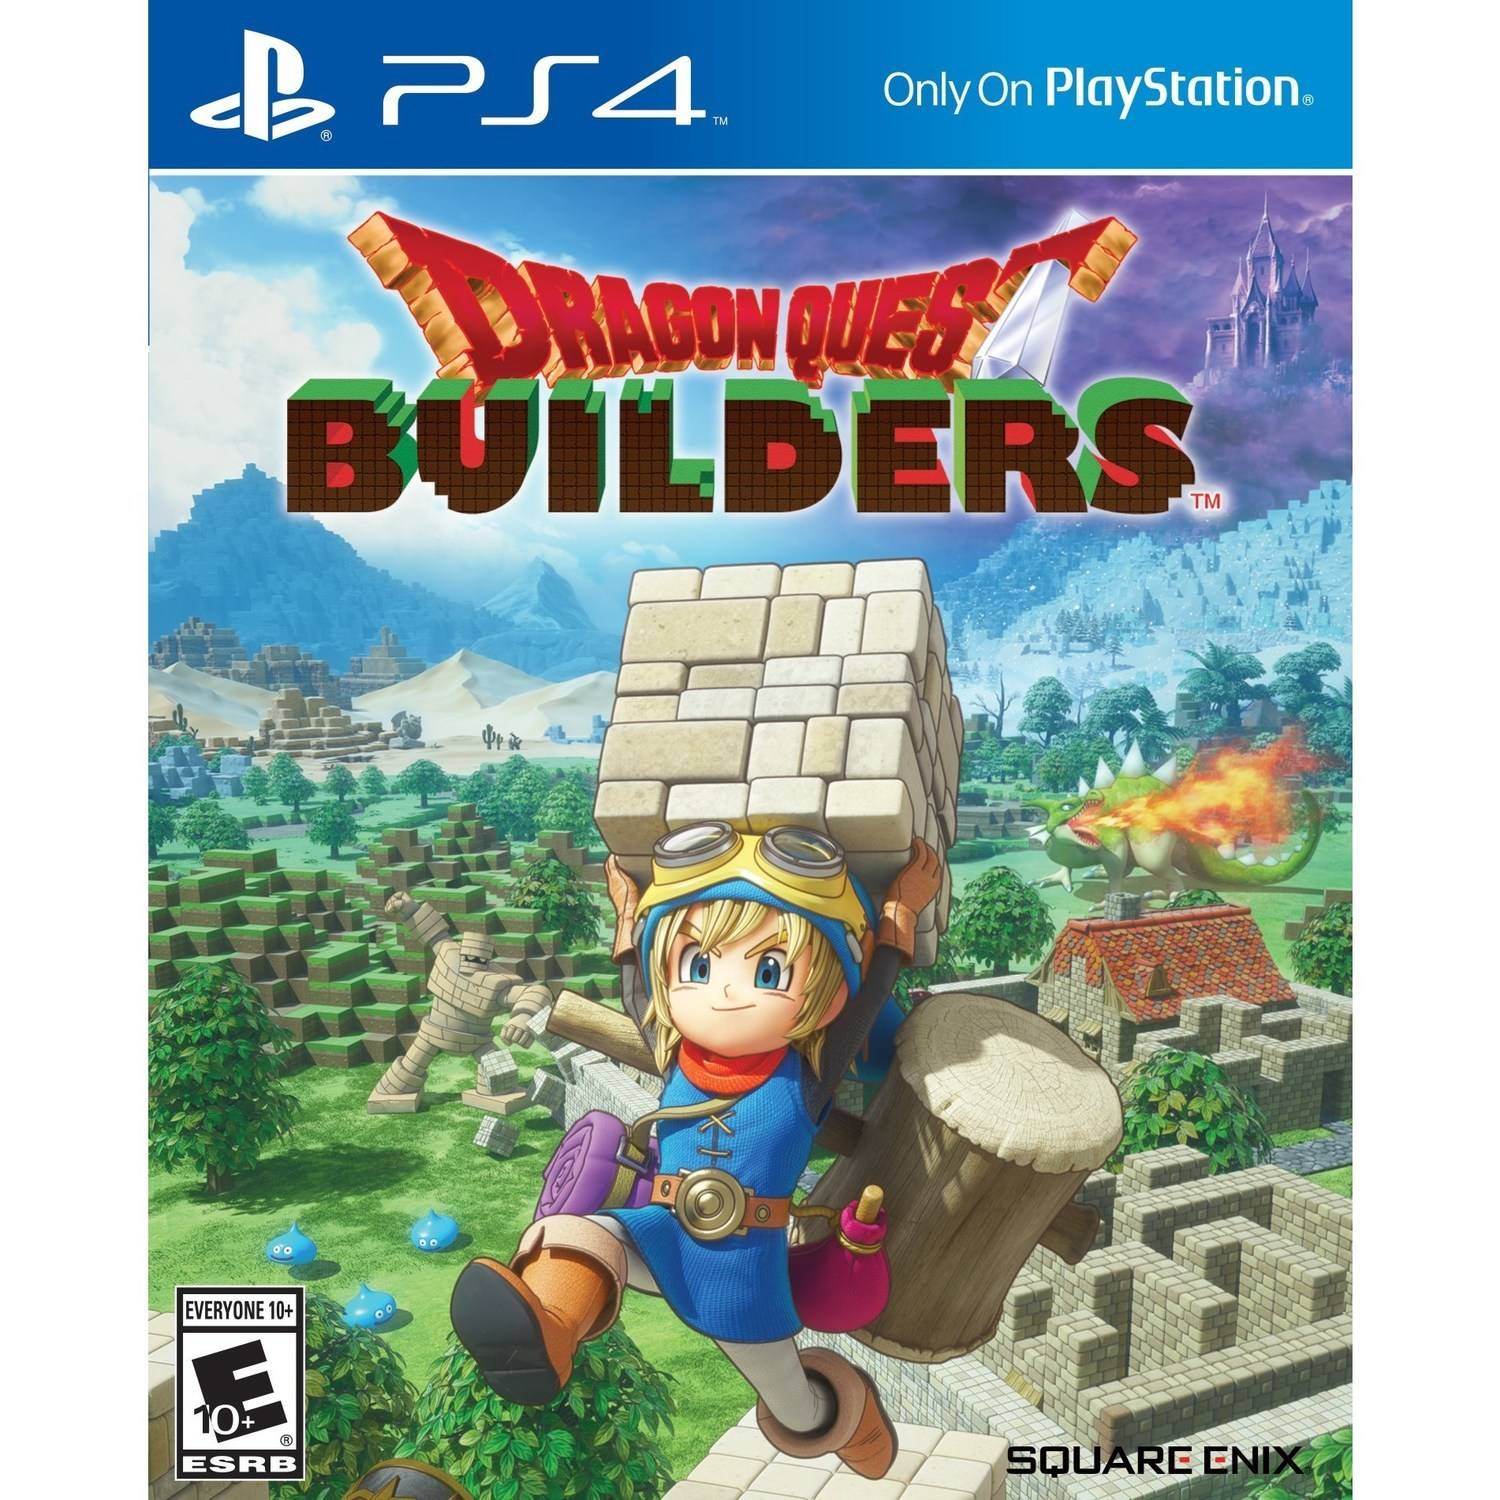 Dragon Quest Builders for PlayStation 4 by Square Enix LLC